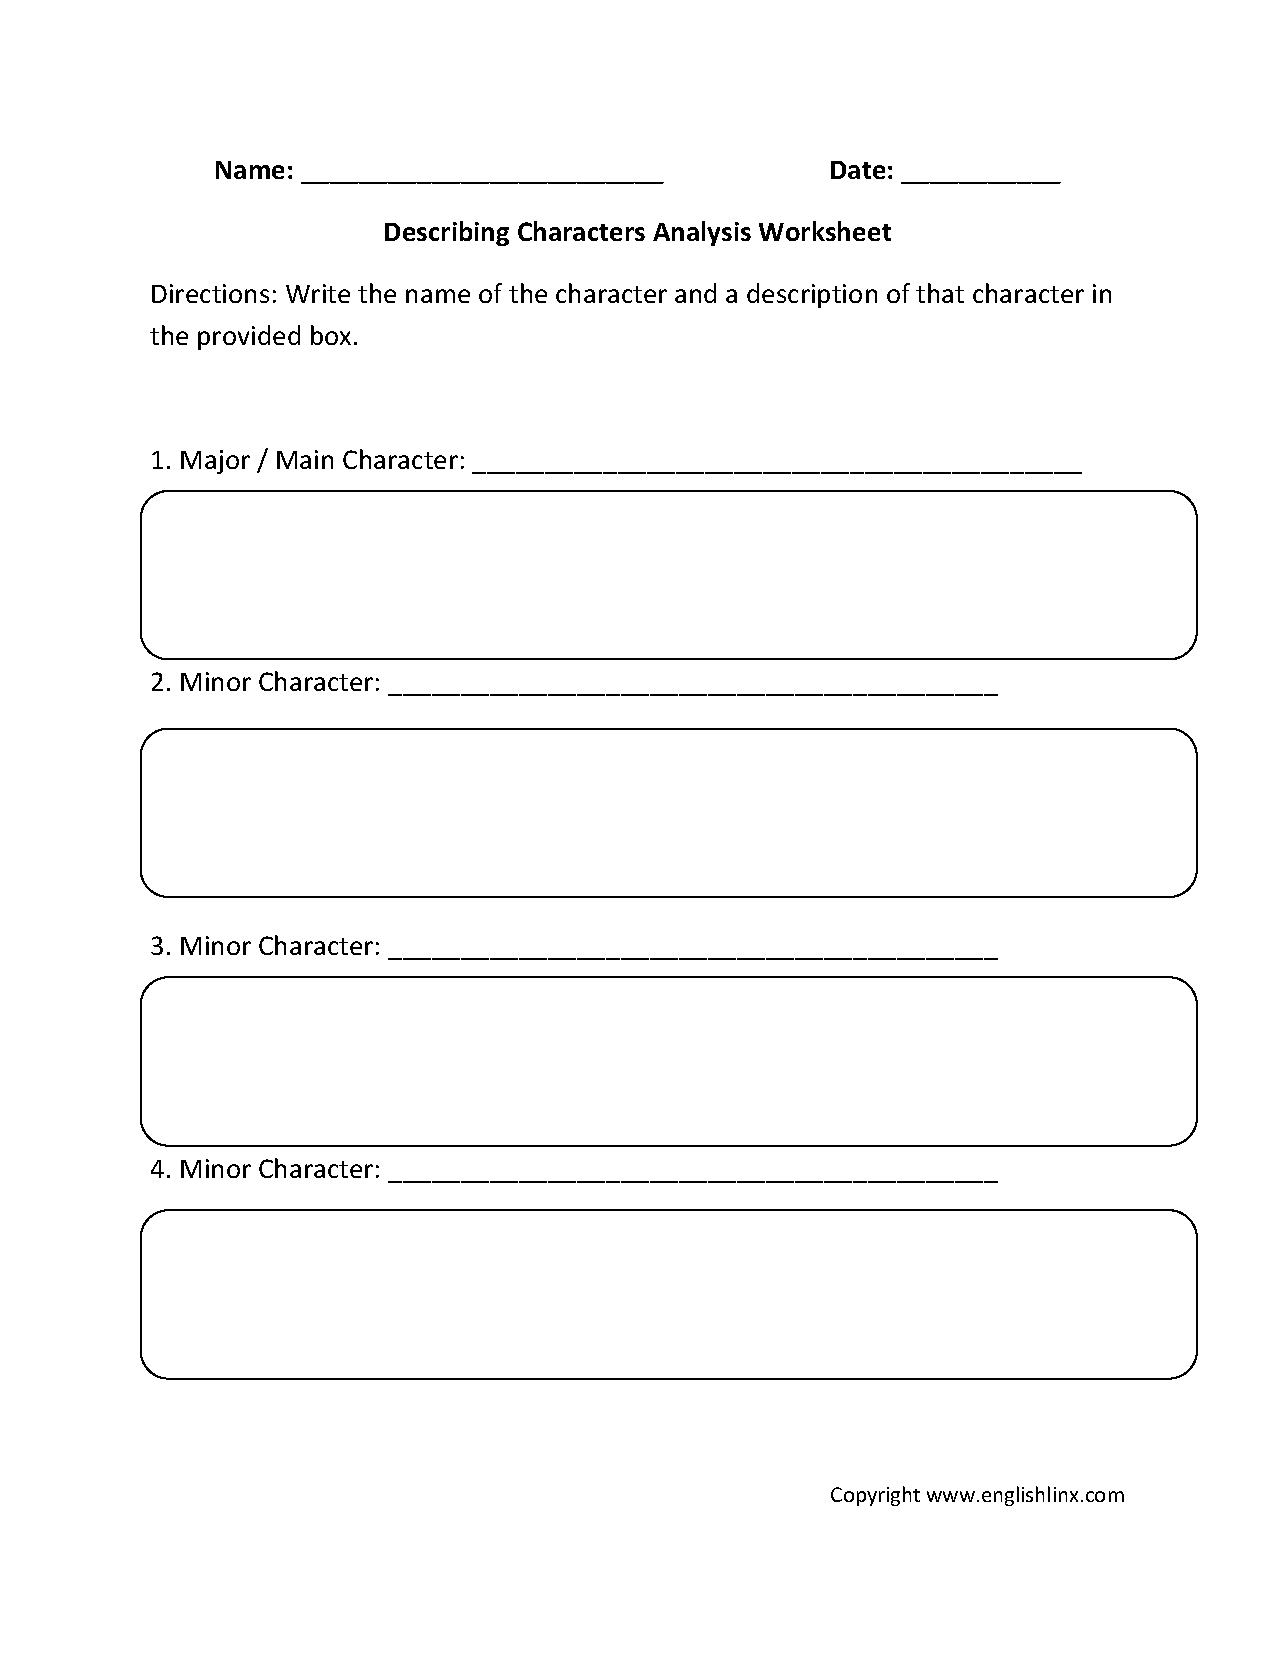 Printables Character Analysis Worksheet englishlinx com character analysis worksheets worksheets